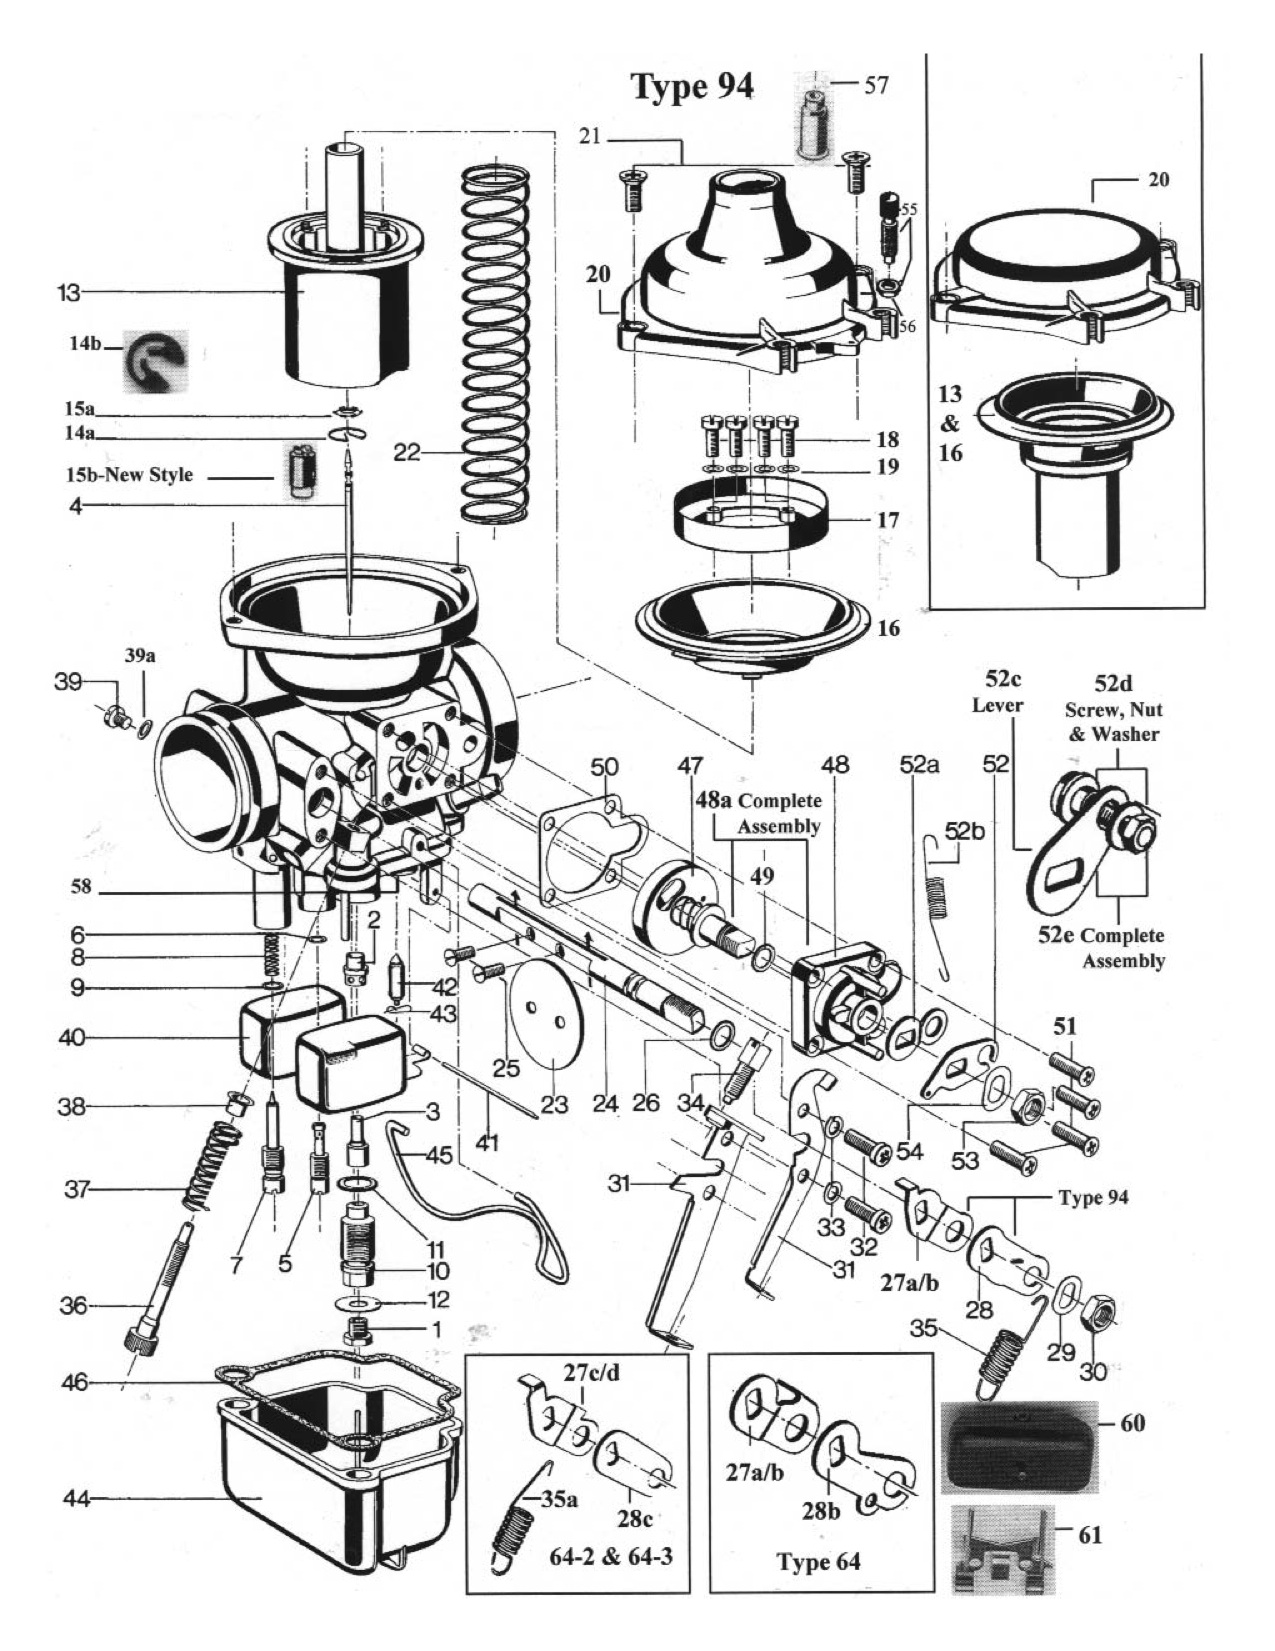 2000 Arctic Cat 300 Wiring Diagram : 34 Wiring Diagram